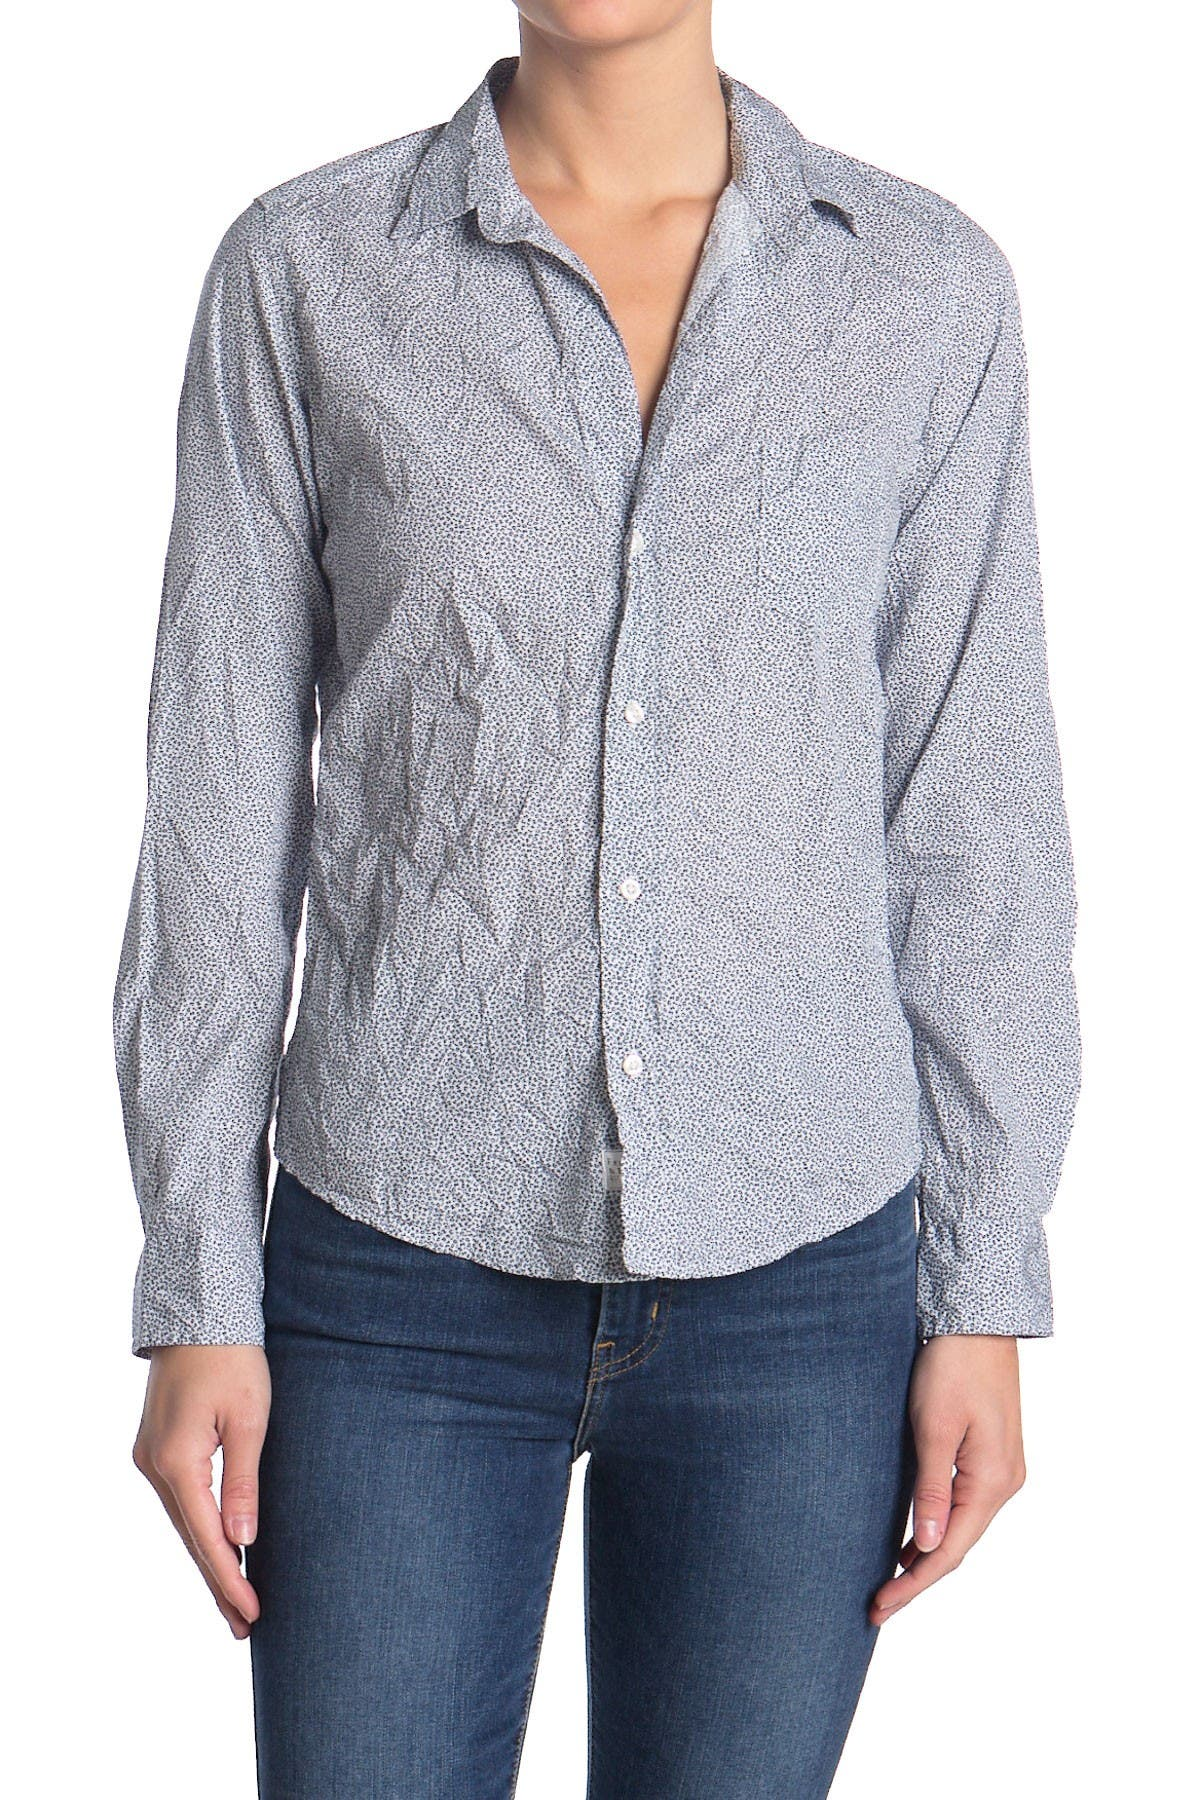 Image of FRANK & EILEEN Barry Ditsy Classic Tailored Fit Shirt